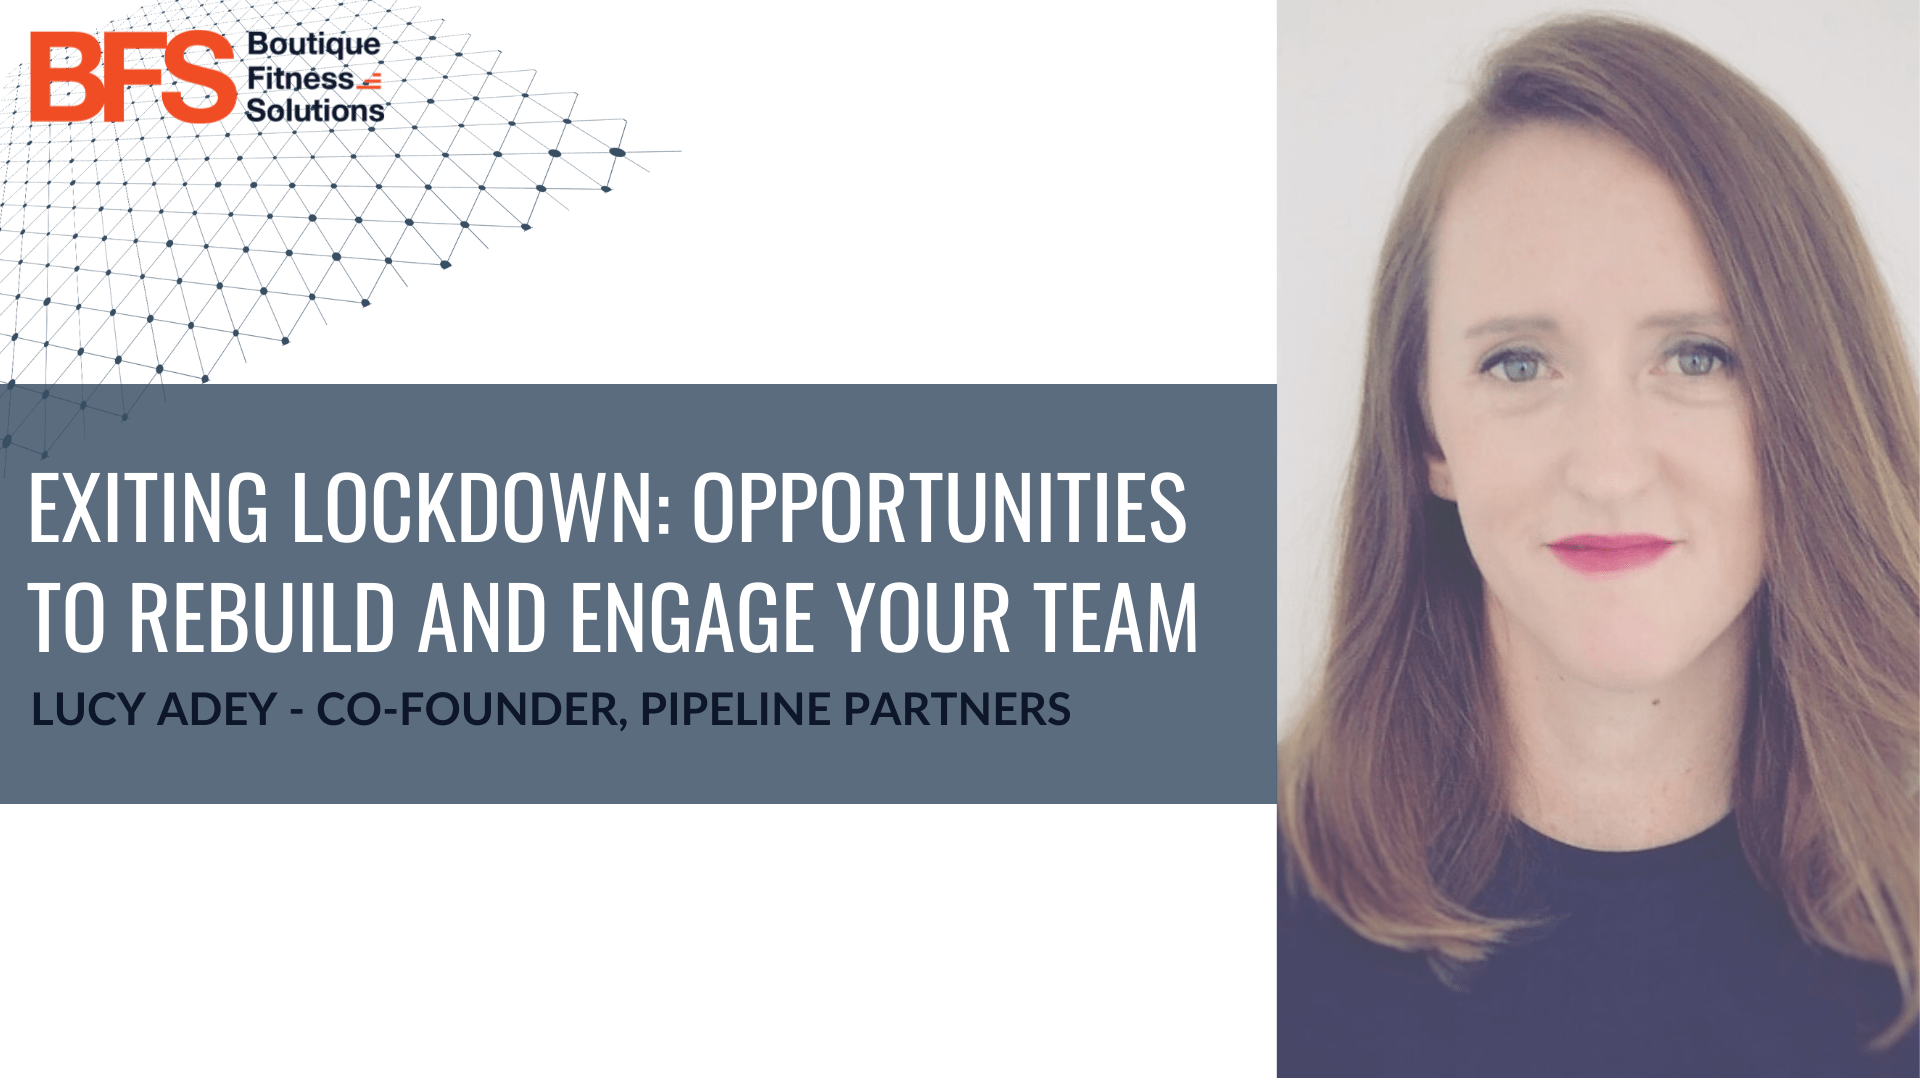 Exiting lockdown: Opportunities to rebuild and engage your team